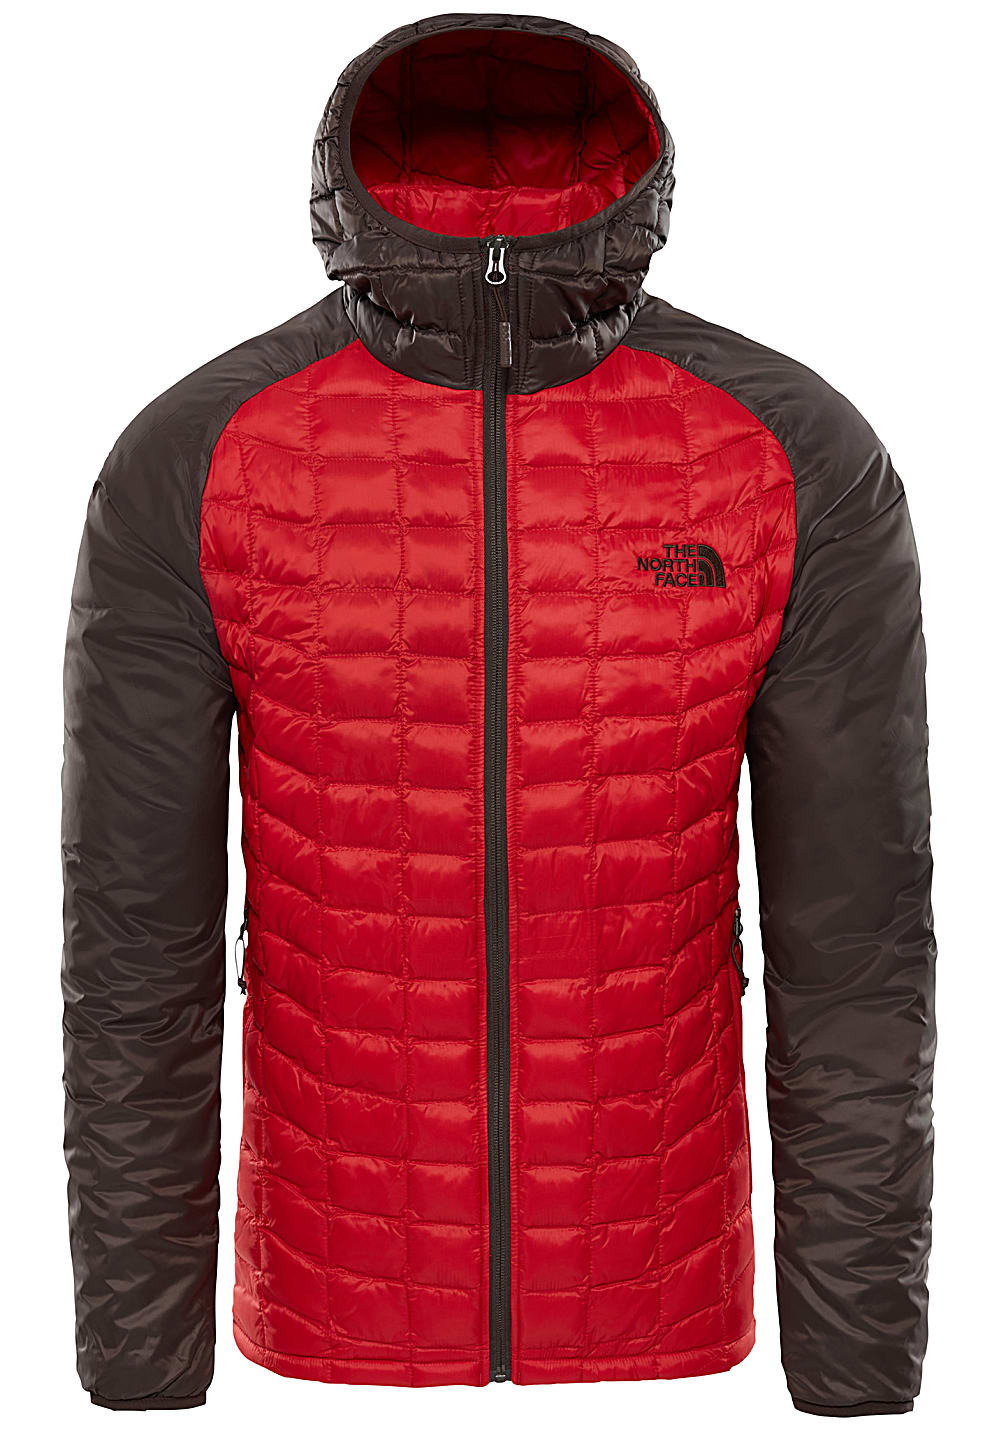 63f2c0a7e THE NORTH FACE Thermoball Sport - Outdoor Jacket for Men - Red